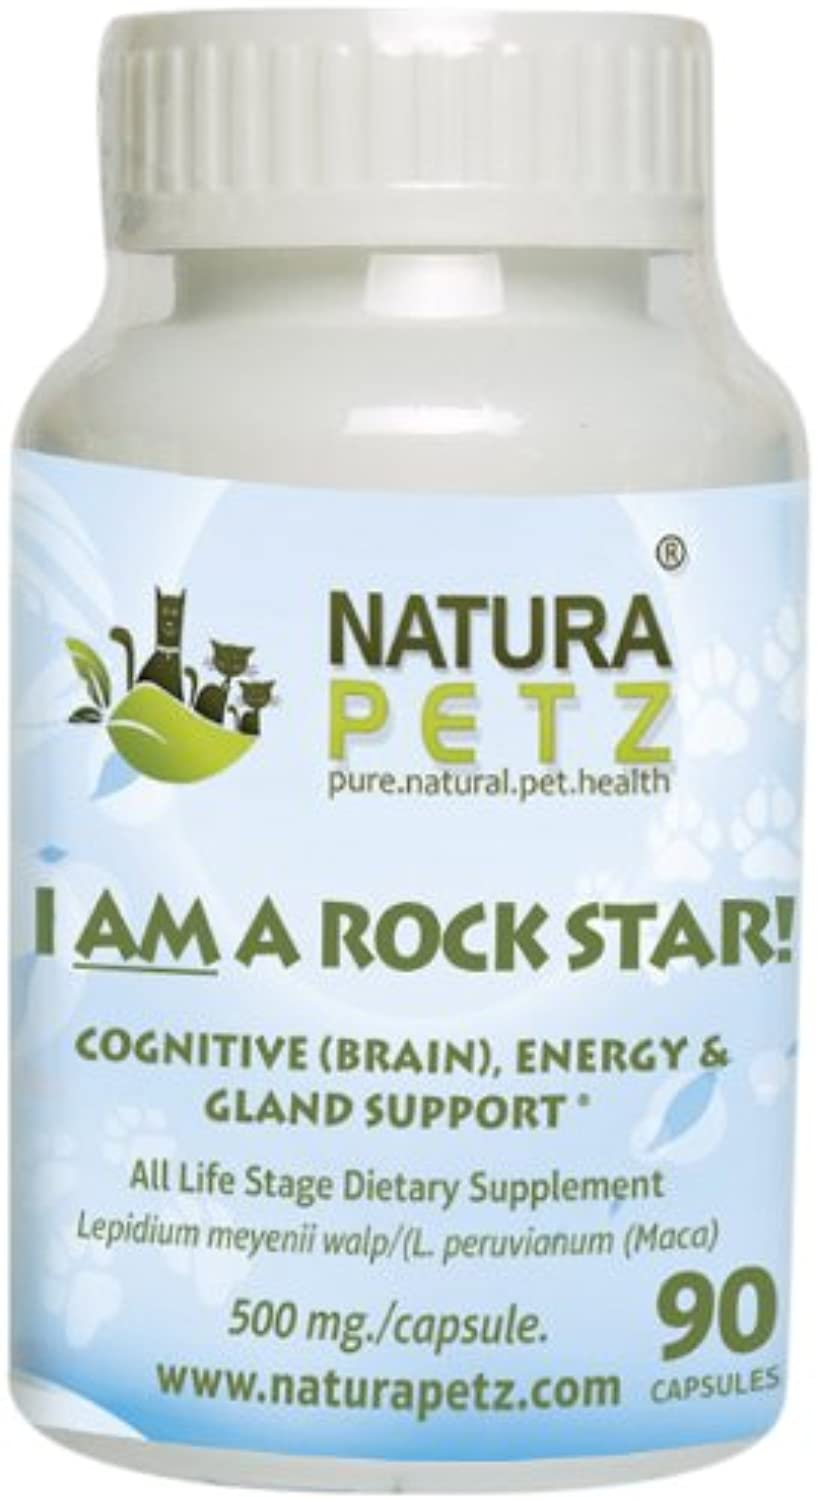 I AM A ROCK STAR  Memory, Gland (Hypothalmic, Pituitary and Adrenal) & Energy Support for All Life Stage Dogs and Cats